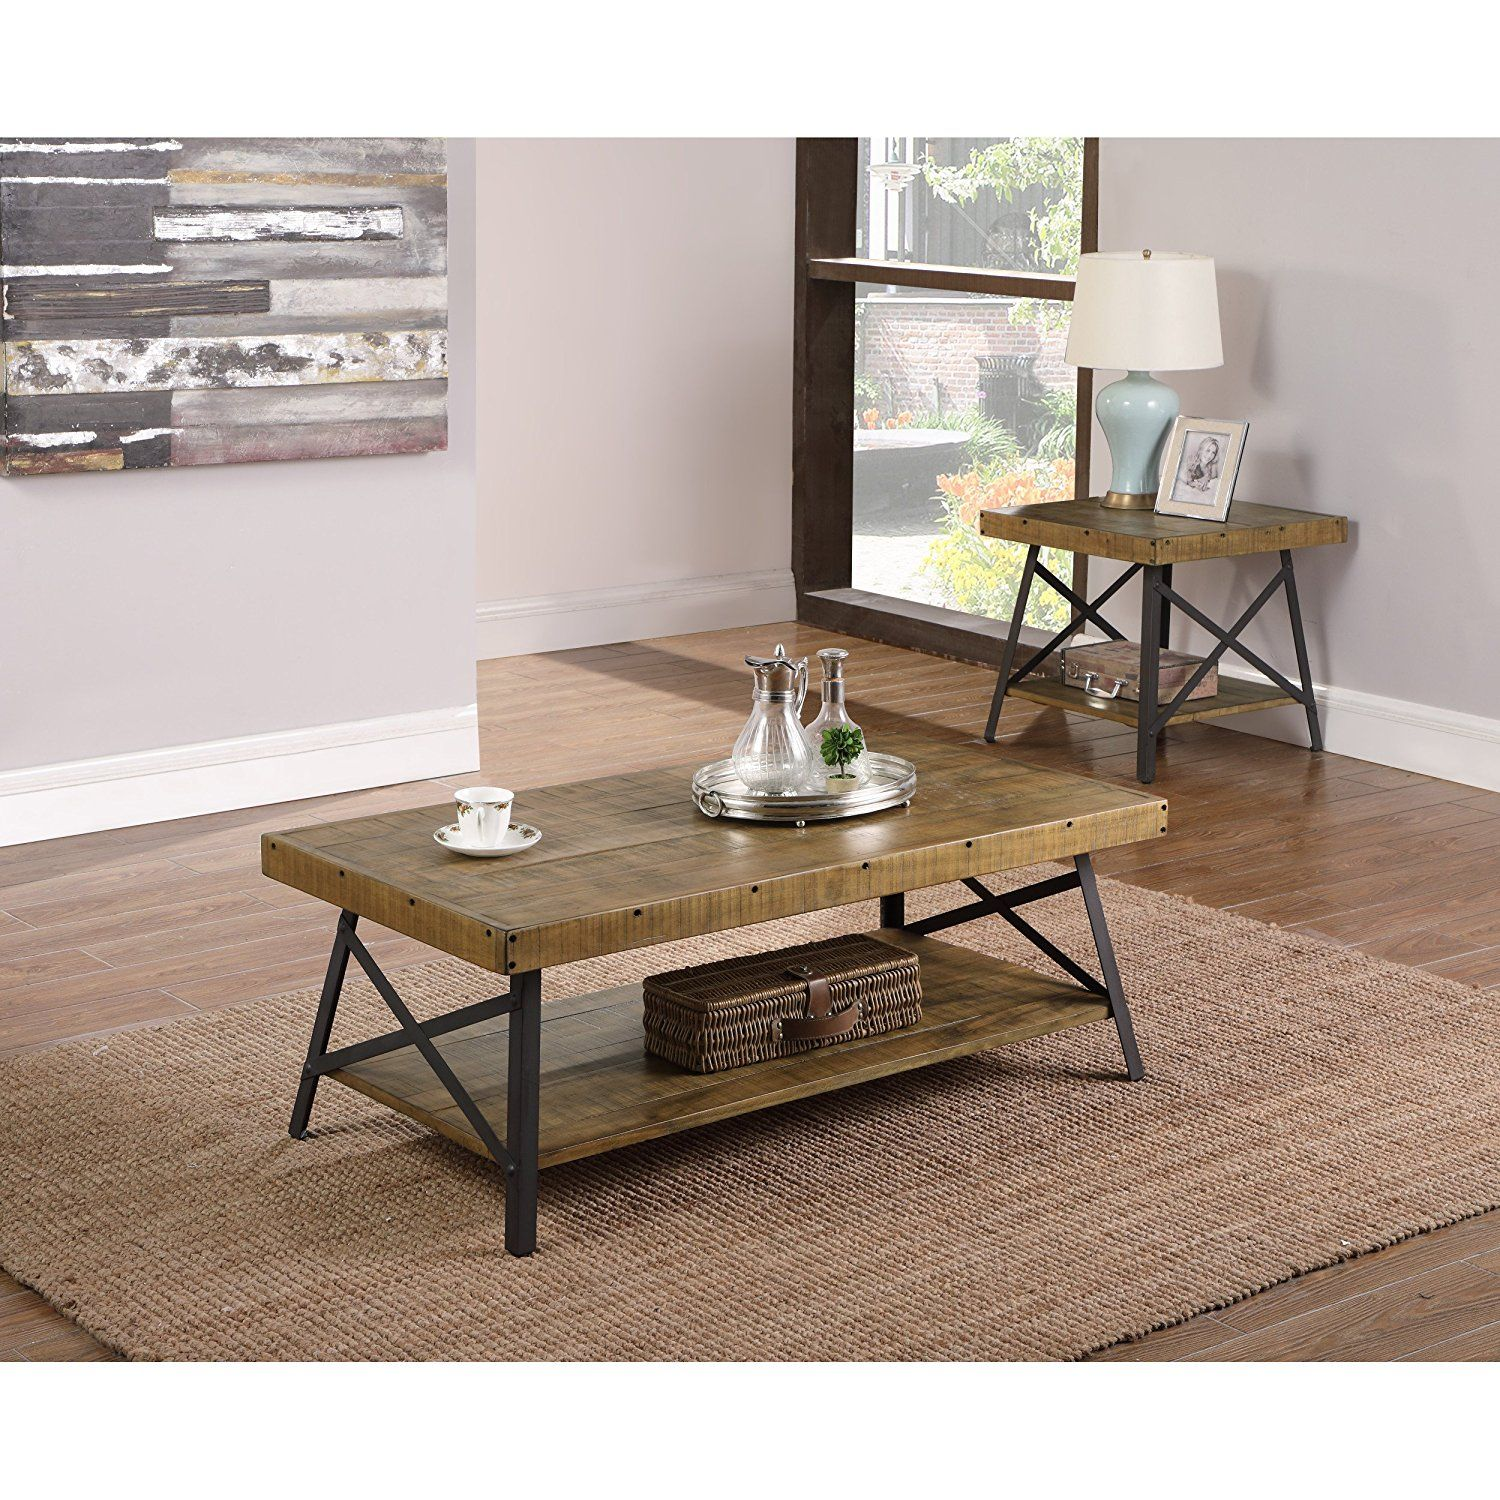 Amazon Com Emerald Home Chandler Rustic Industrial Solid Wood And Steel Coffee Table With Open Shelf Kitche Coffee Table Steel Coffee Table Rustic Industrial